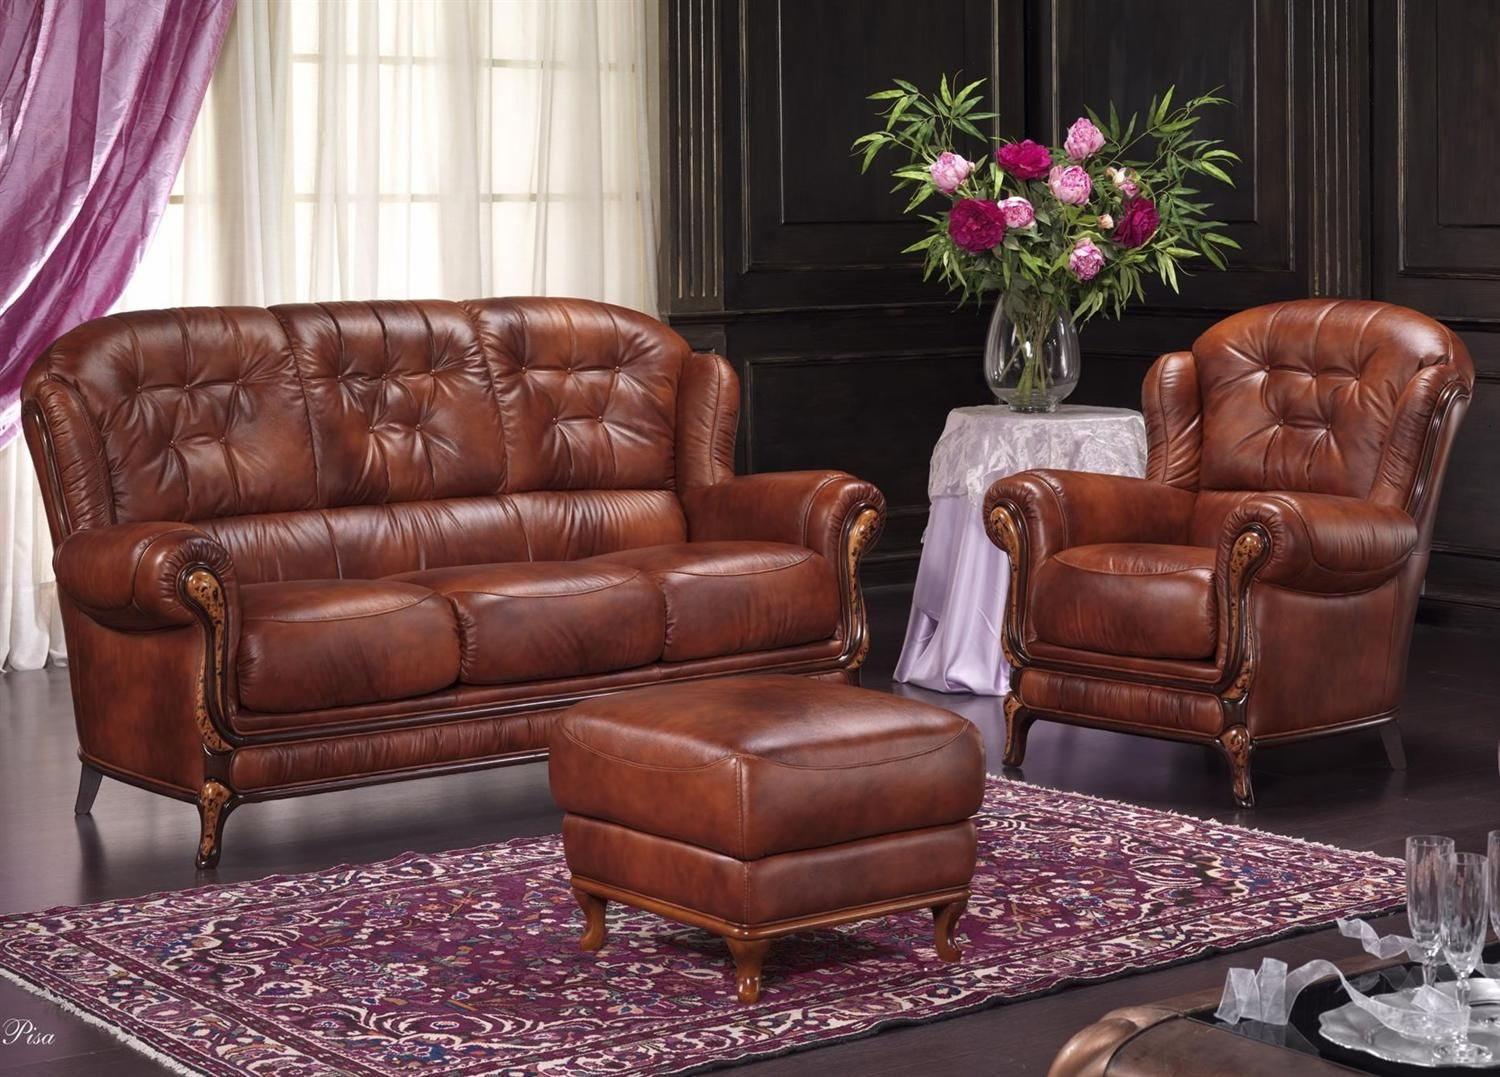 Bardi Pisa Leather Sofa Collection From George Tannahill Sons Leather Sofa Bedroom Decor Chair